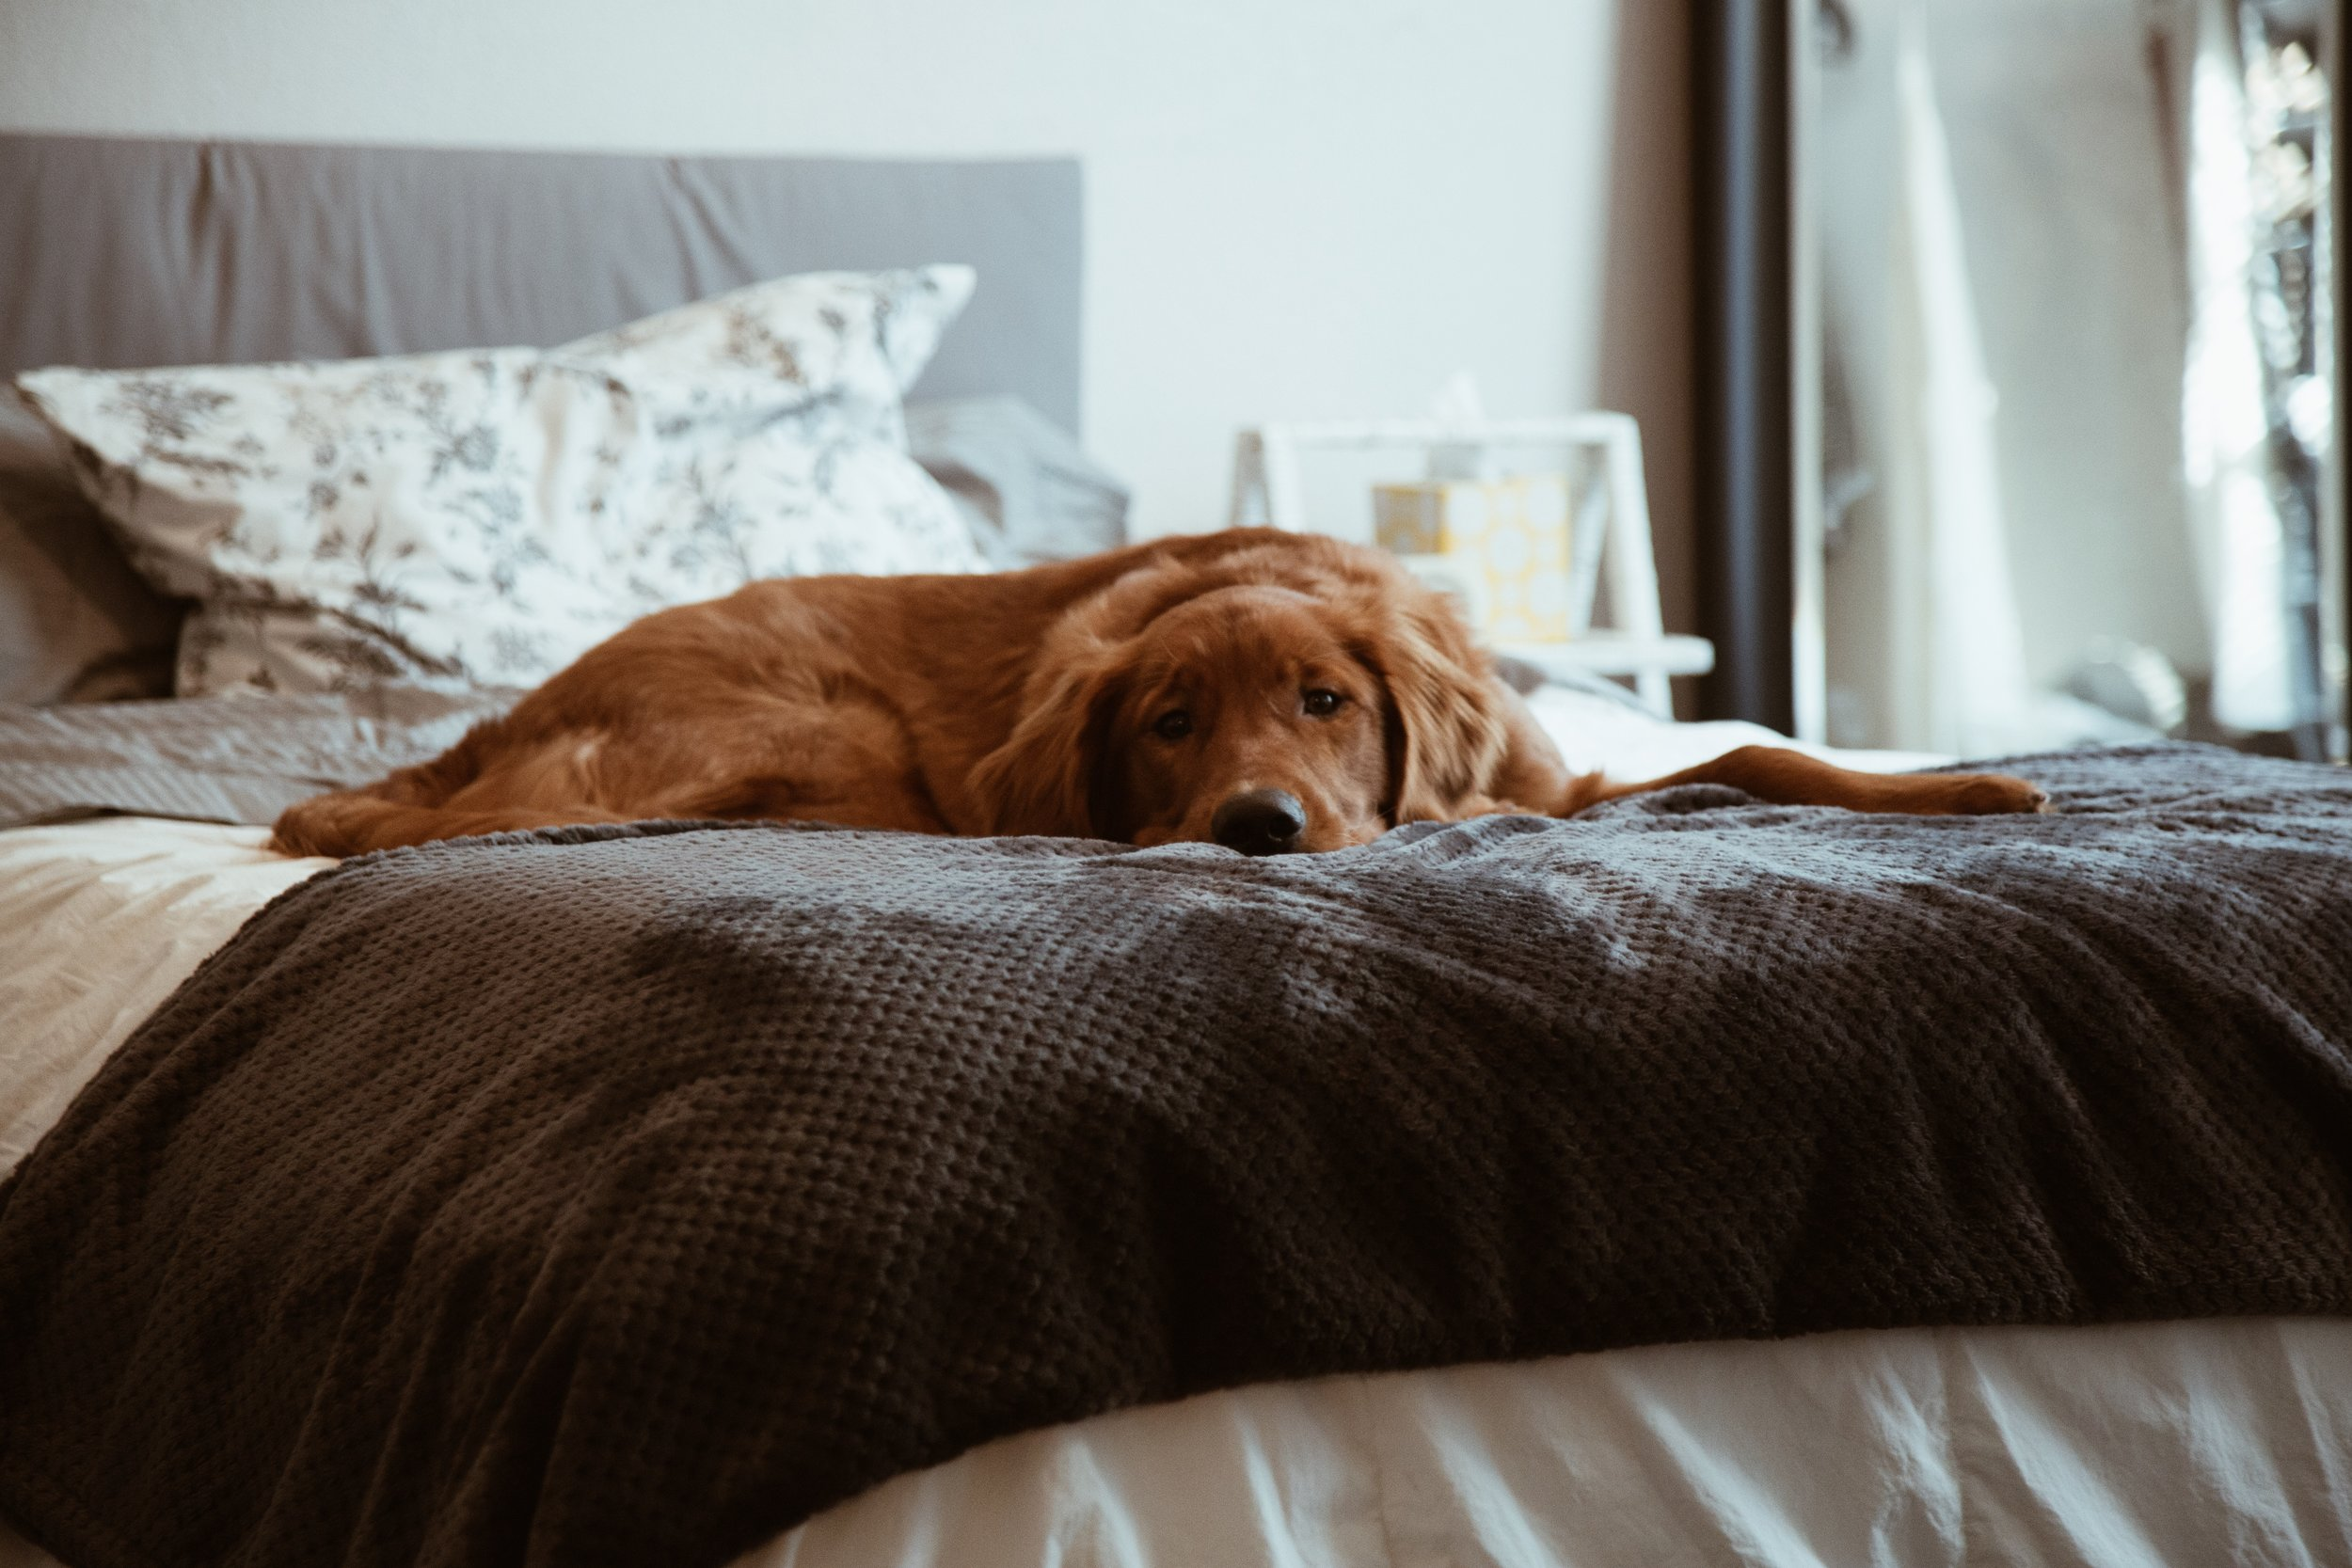 Tips:  Don't allow dogs on furniture  Don't speak to your dog when you go out or come home  Don't leave food out for your dog, and feed adult dogs once a day  People go through doorways first